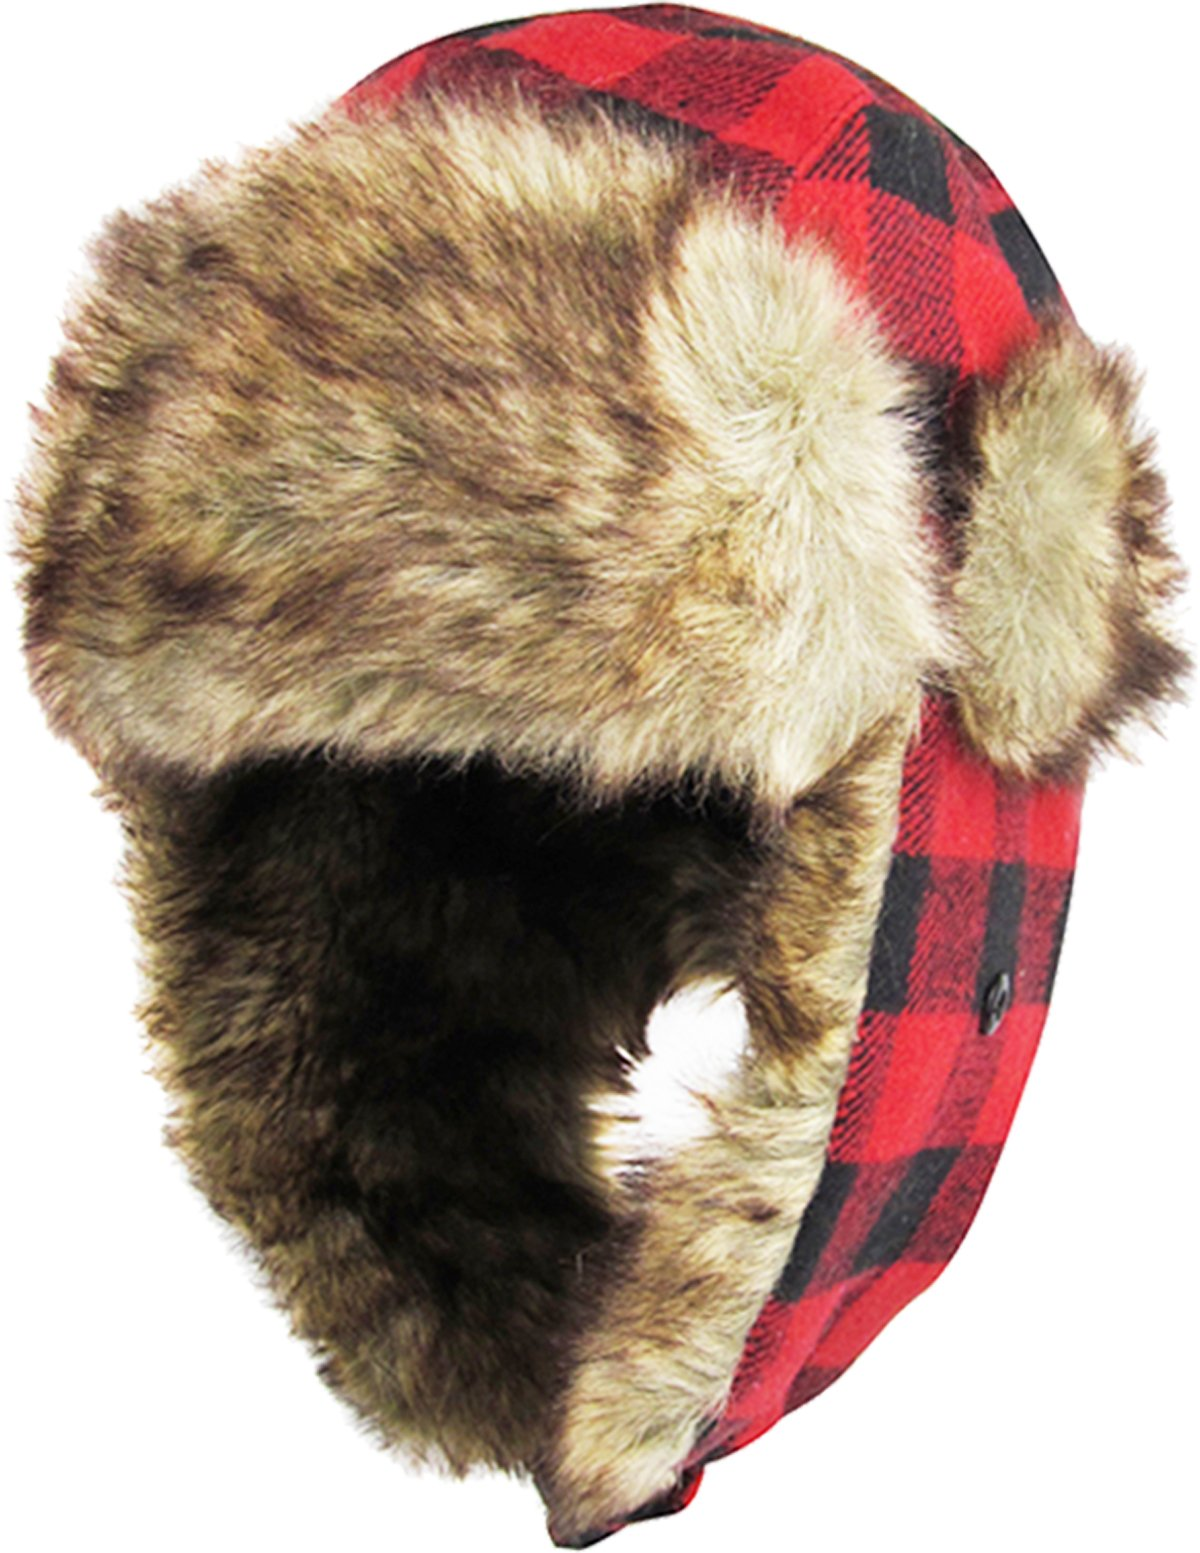 bcaef10e02f292 Unisex Winter Trooper Hat Collection for Men and Women Lumberjack Ushanka  Ear Flap Chin Strap and